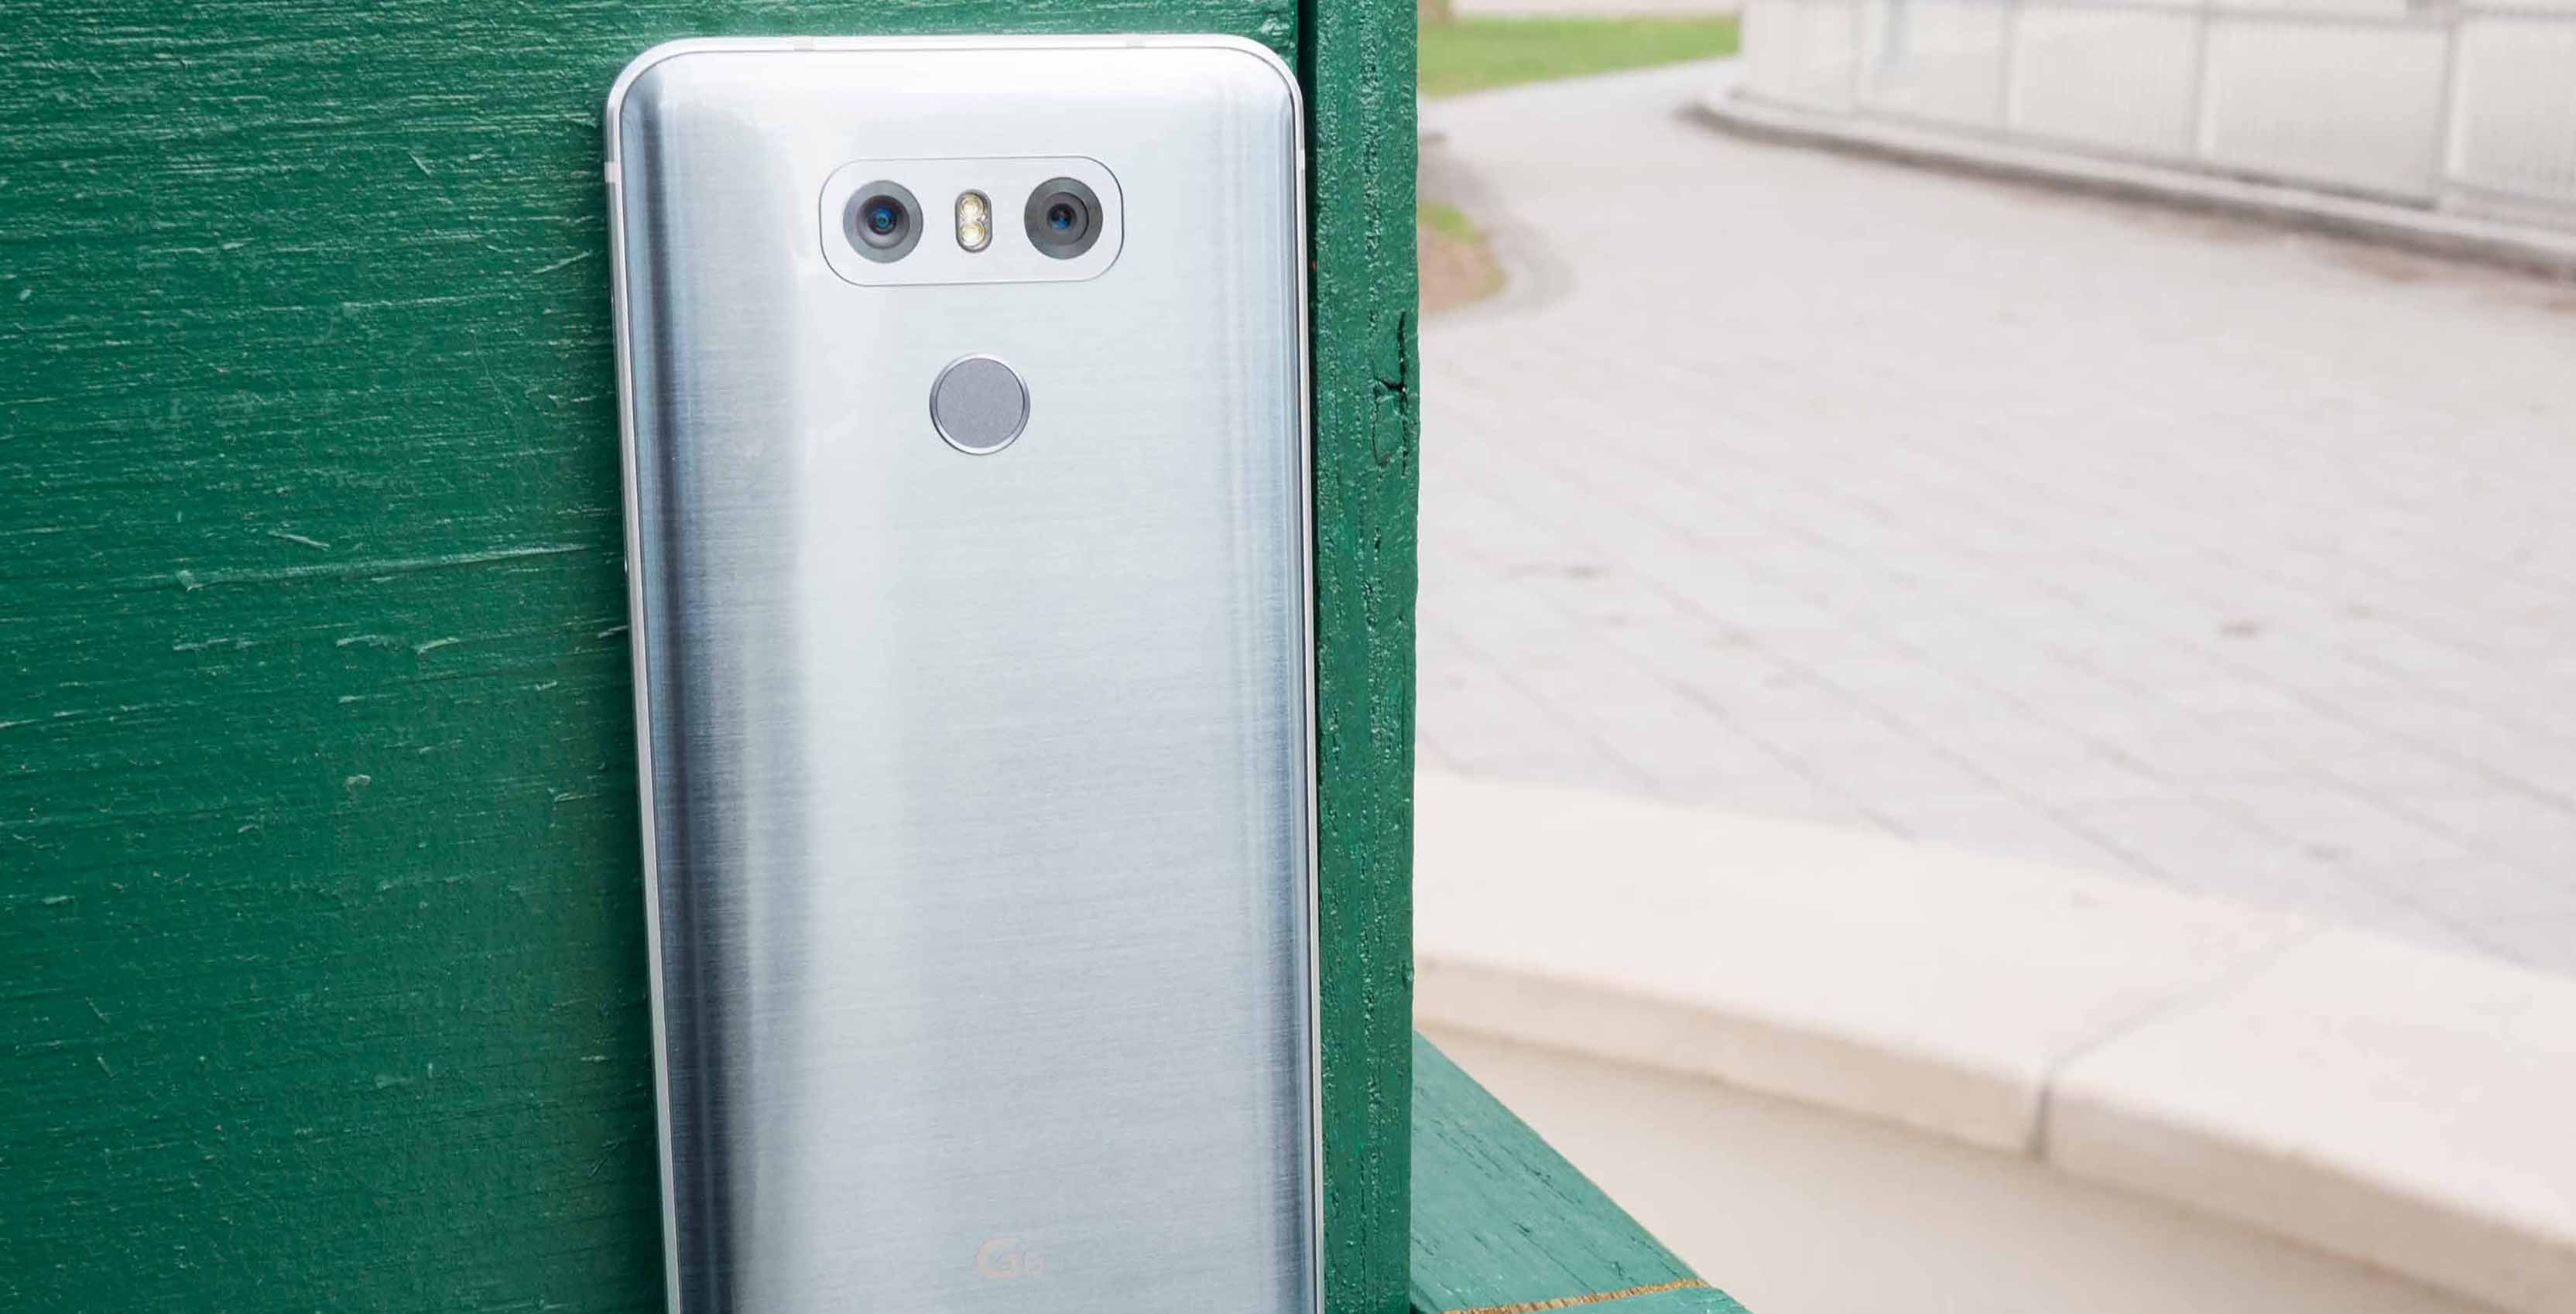 LG G6 against wall